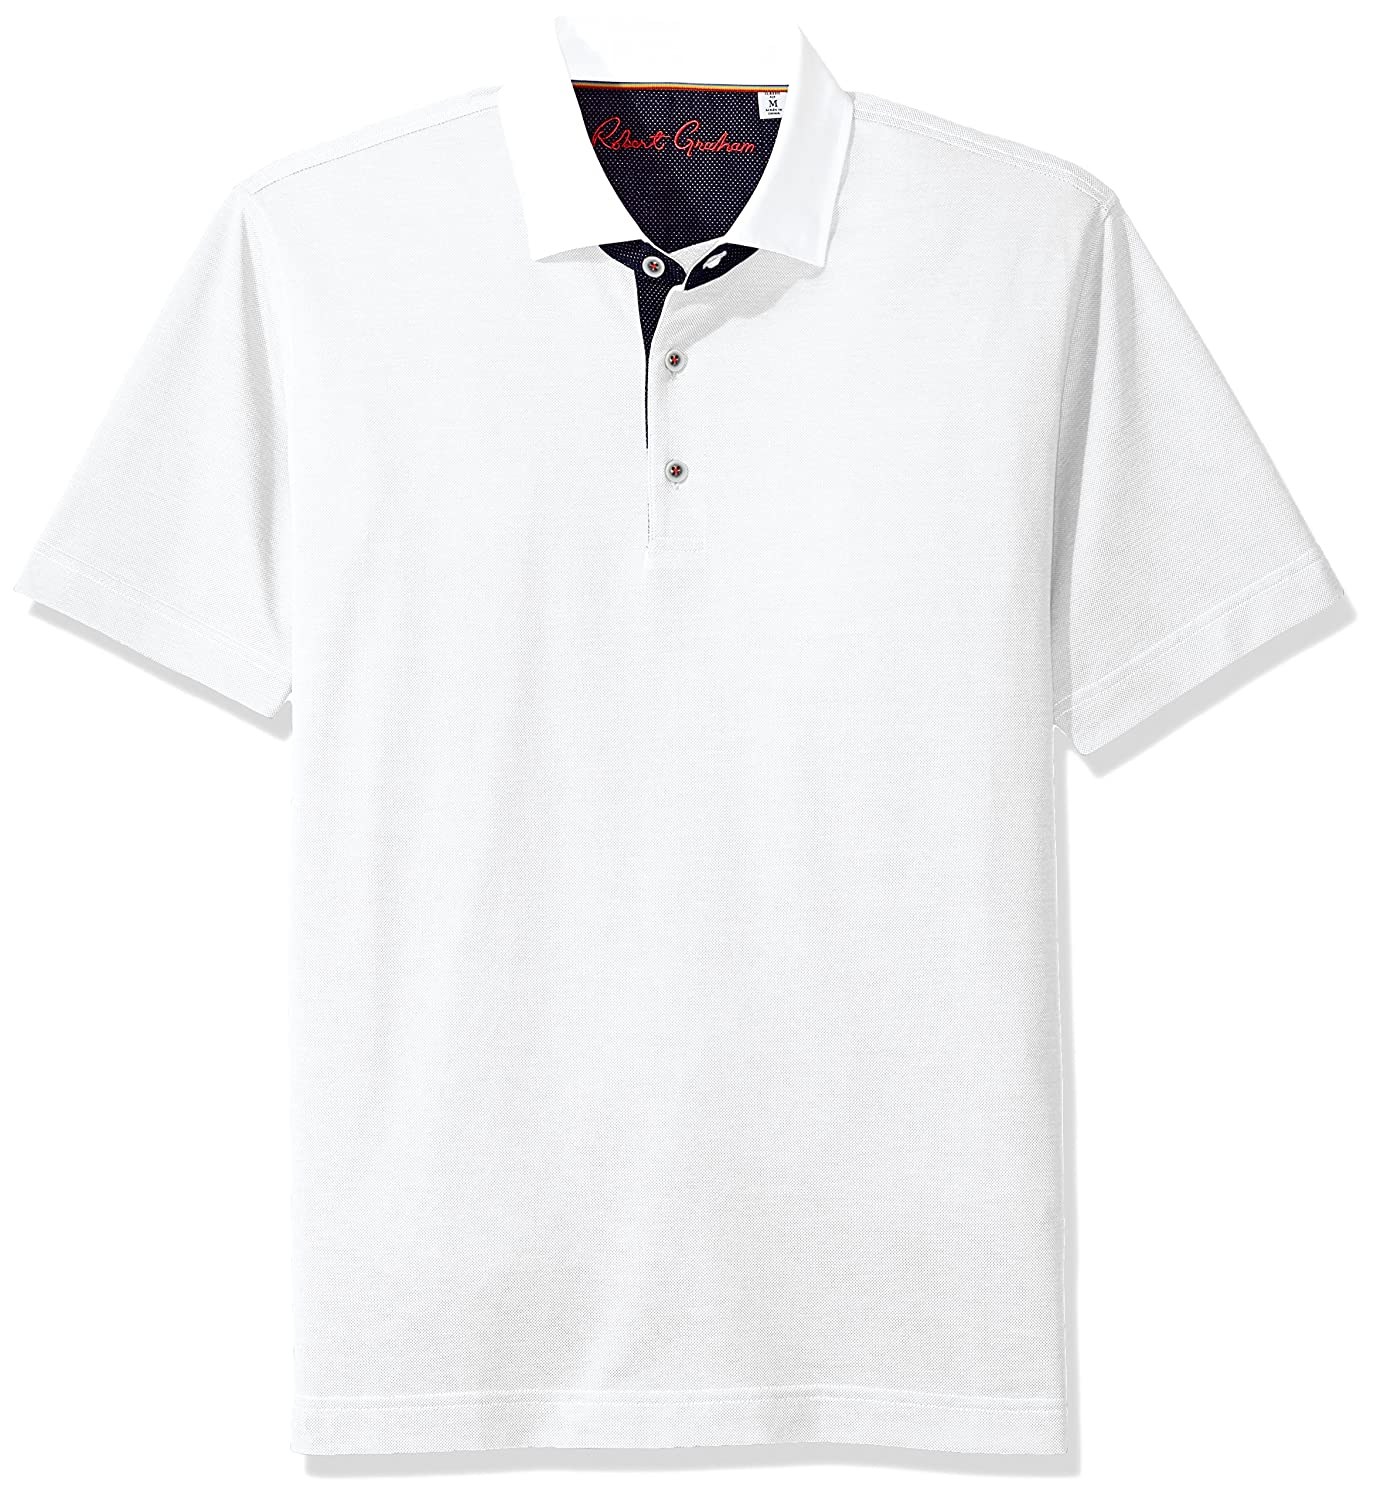 ROBERT GRAHAM MEN/'S CLOCK TOWER SHORT SLEEVE POLO CLASSIC FIT MSRP $98 NWT